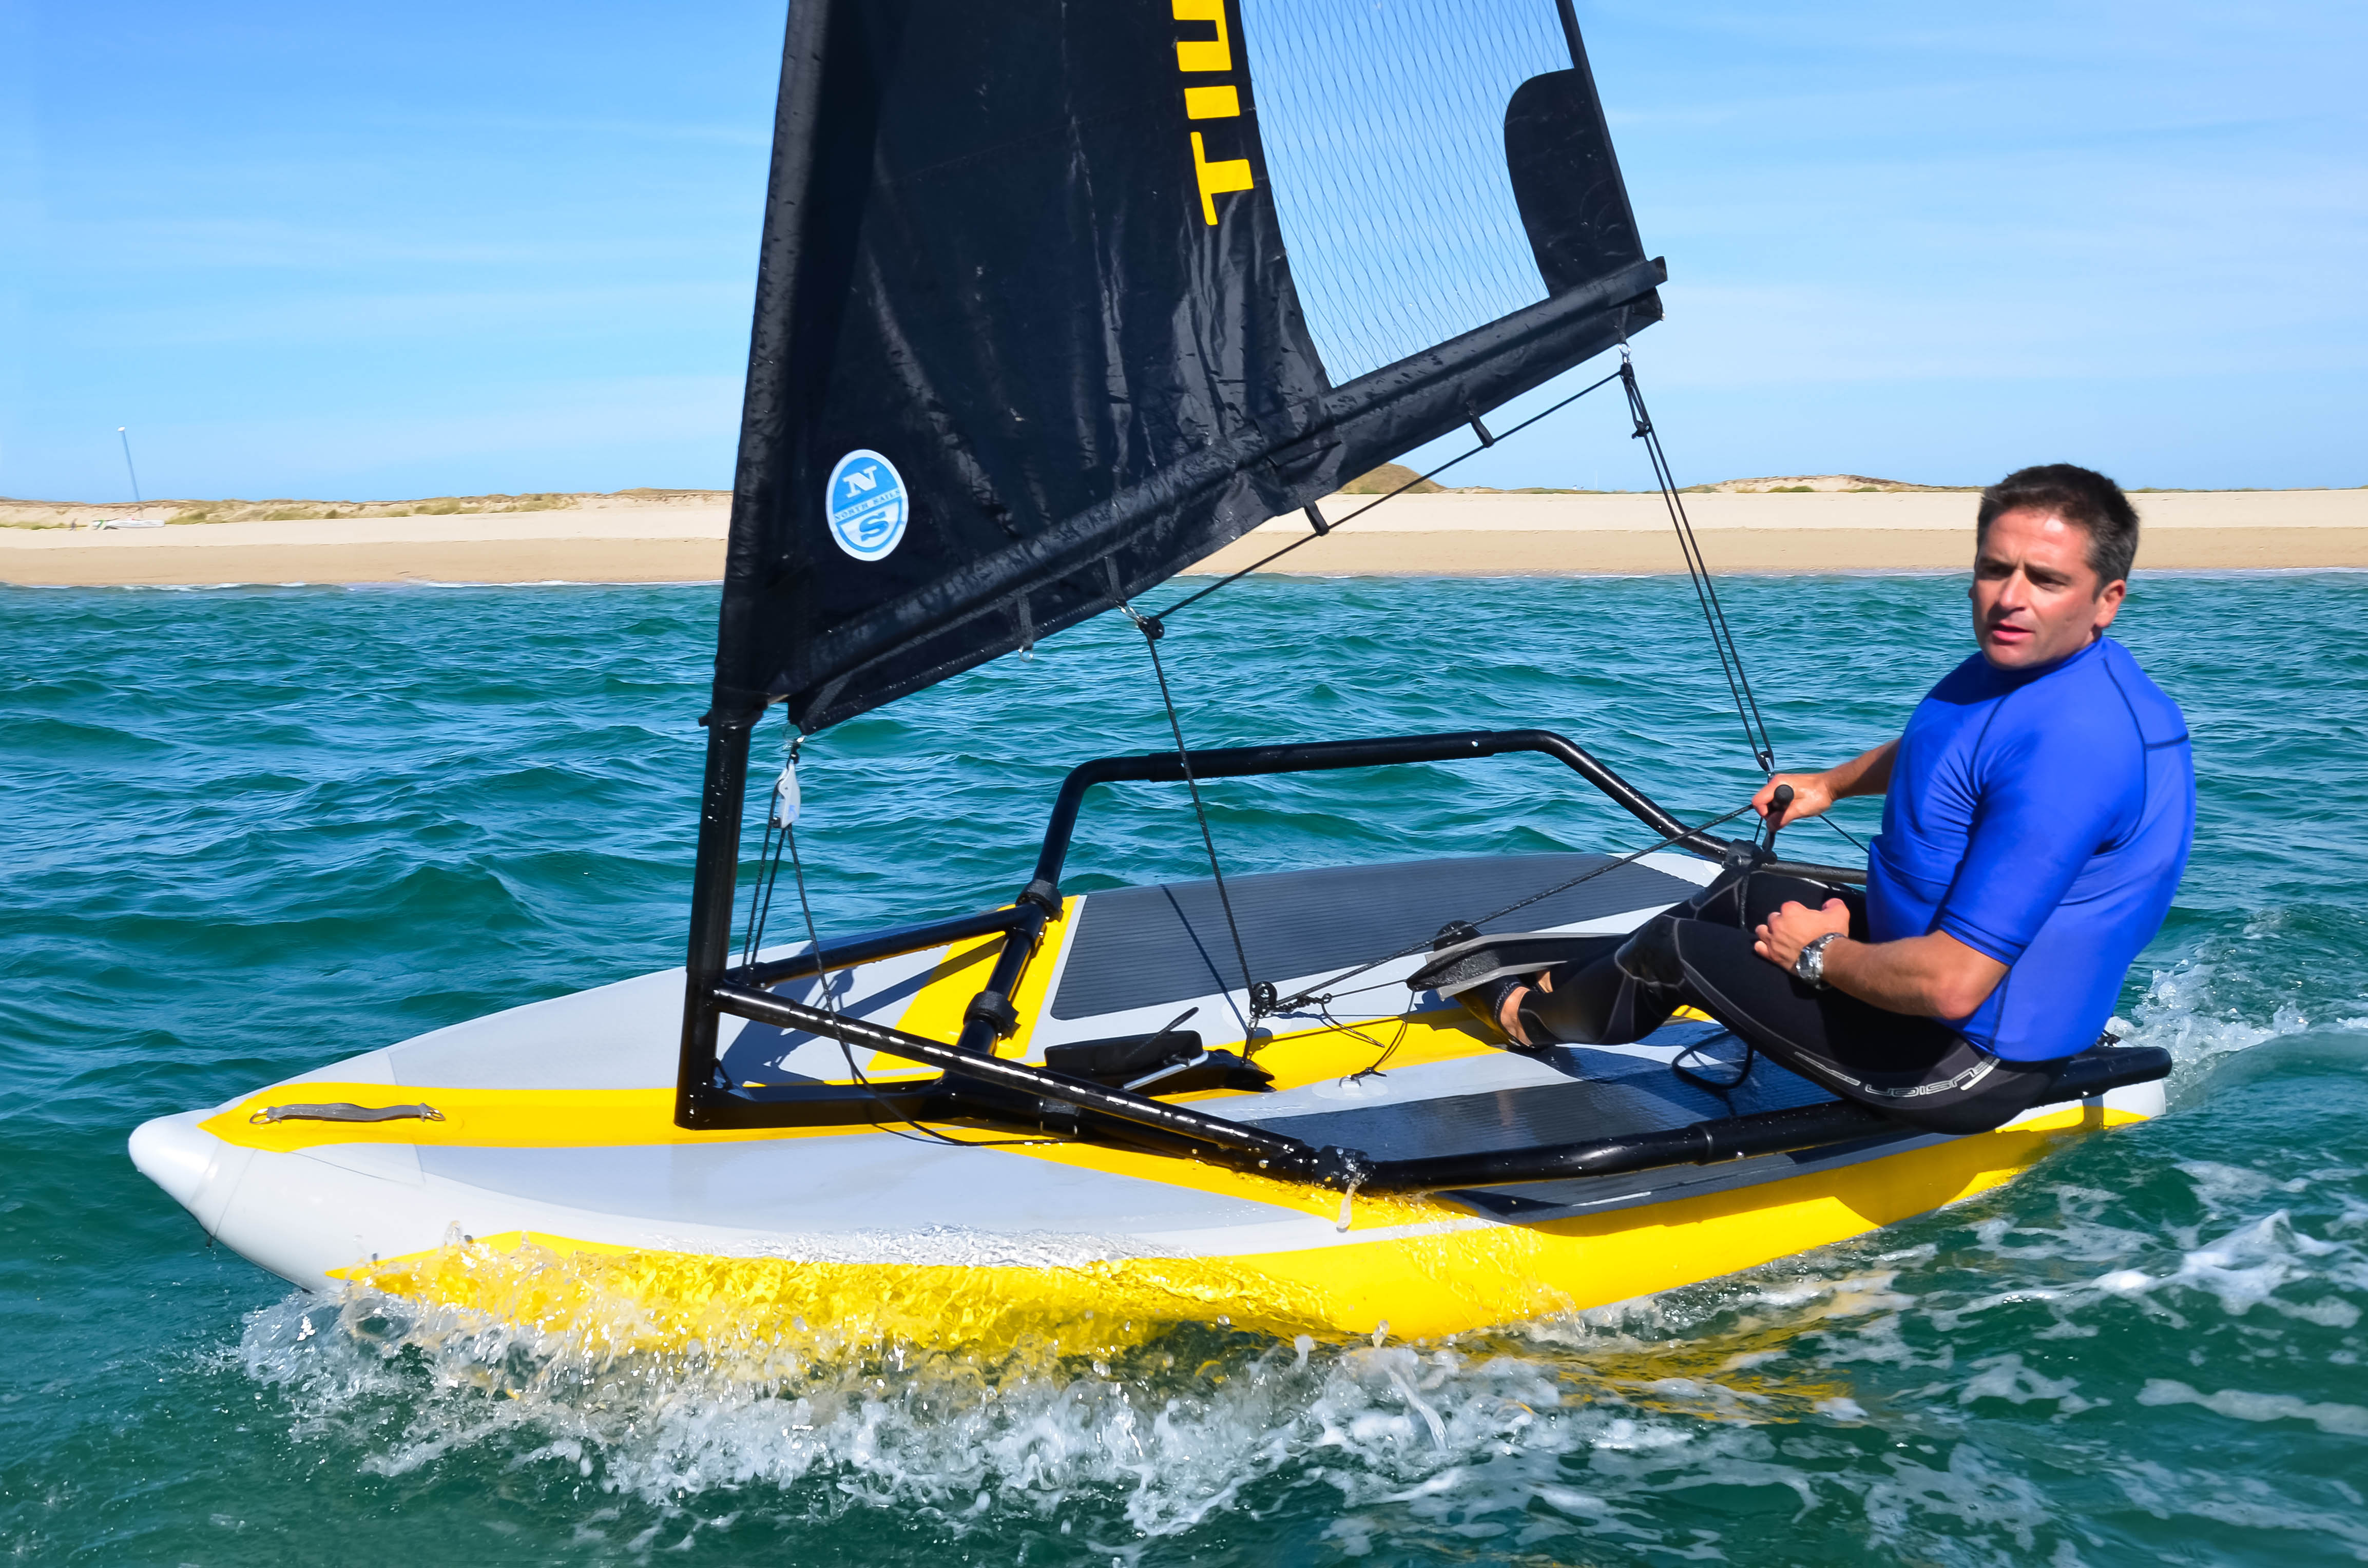 Christmas gift ideas: TIWAL inflatable dinghy